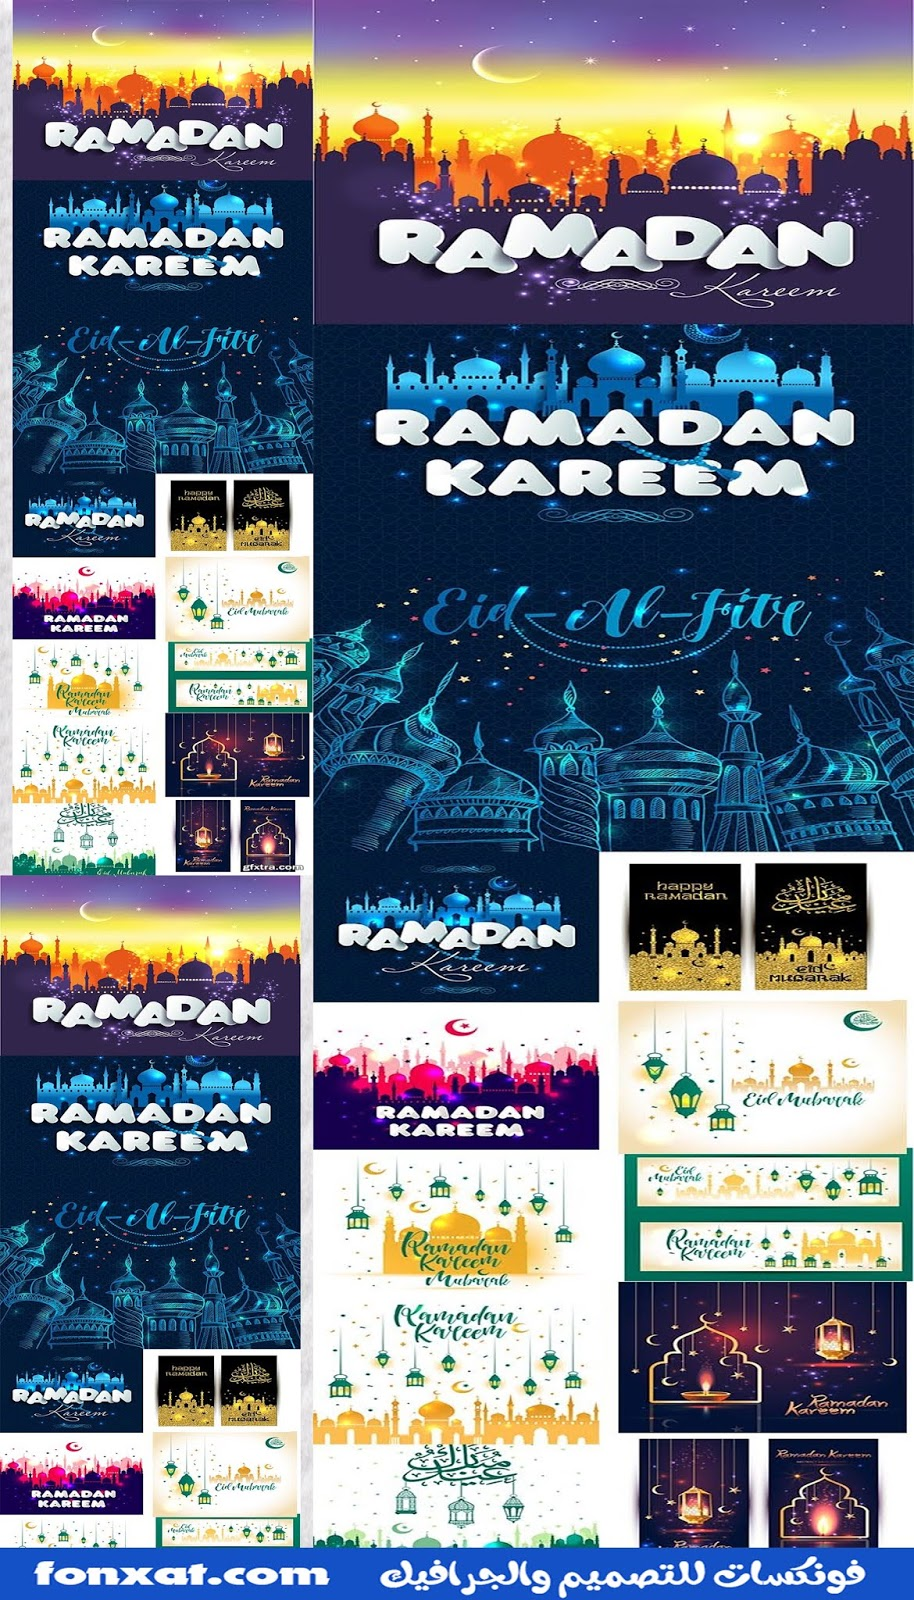 Ramadan designs that celebrate Ramadan carry joy and pleasure